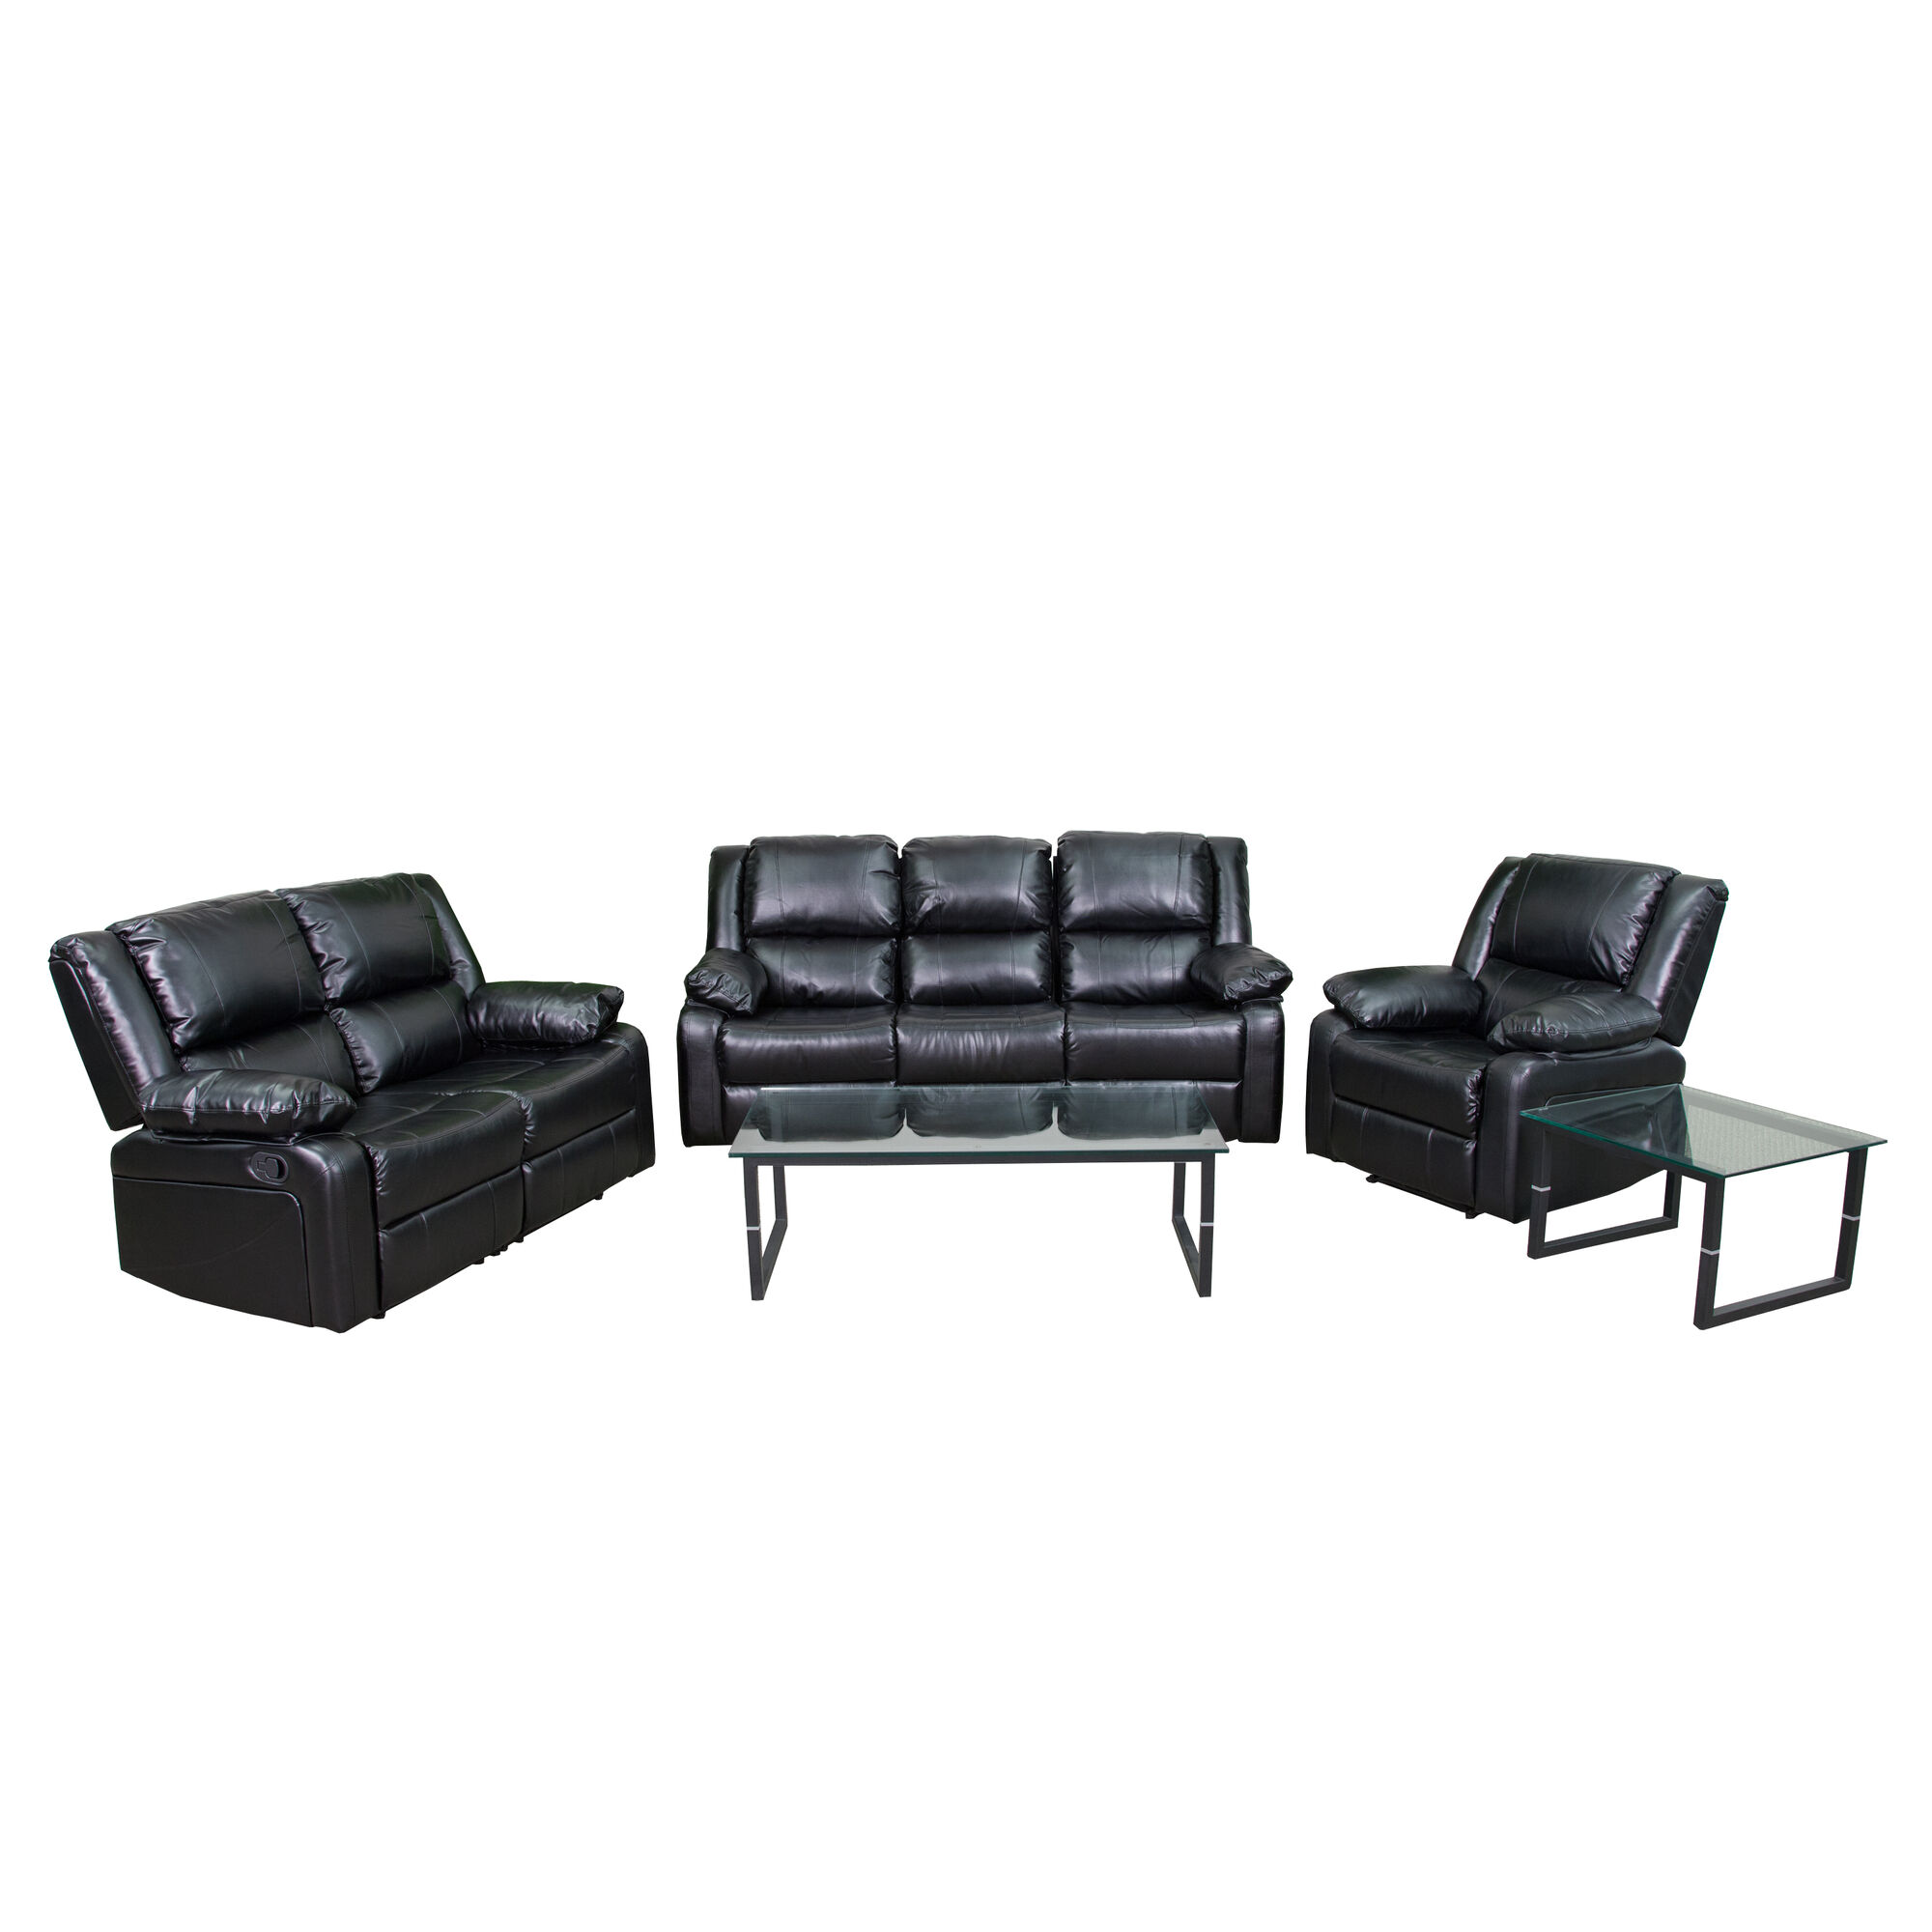 Wondrous Harmony Series Black Leather Reclining Sofa Set Gamerscity Chair Design For Home Gamerscityorg